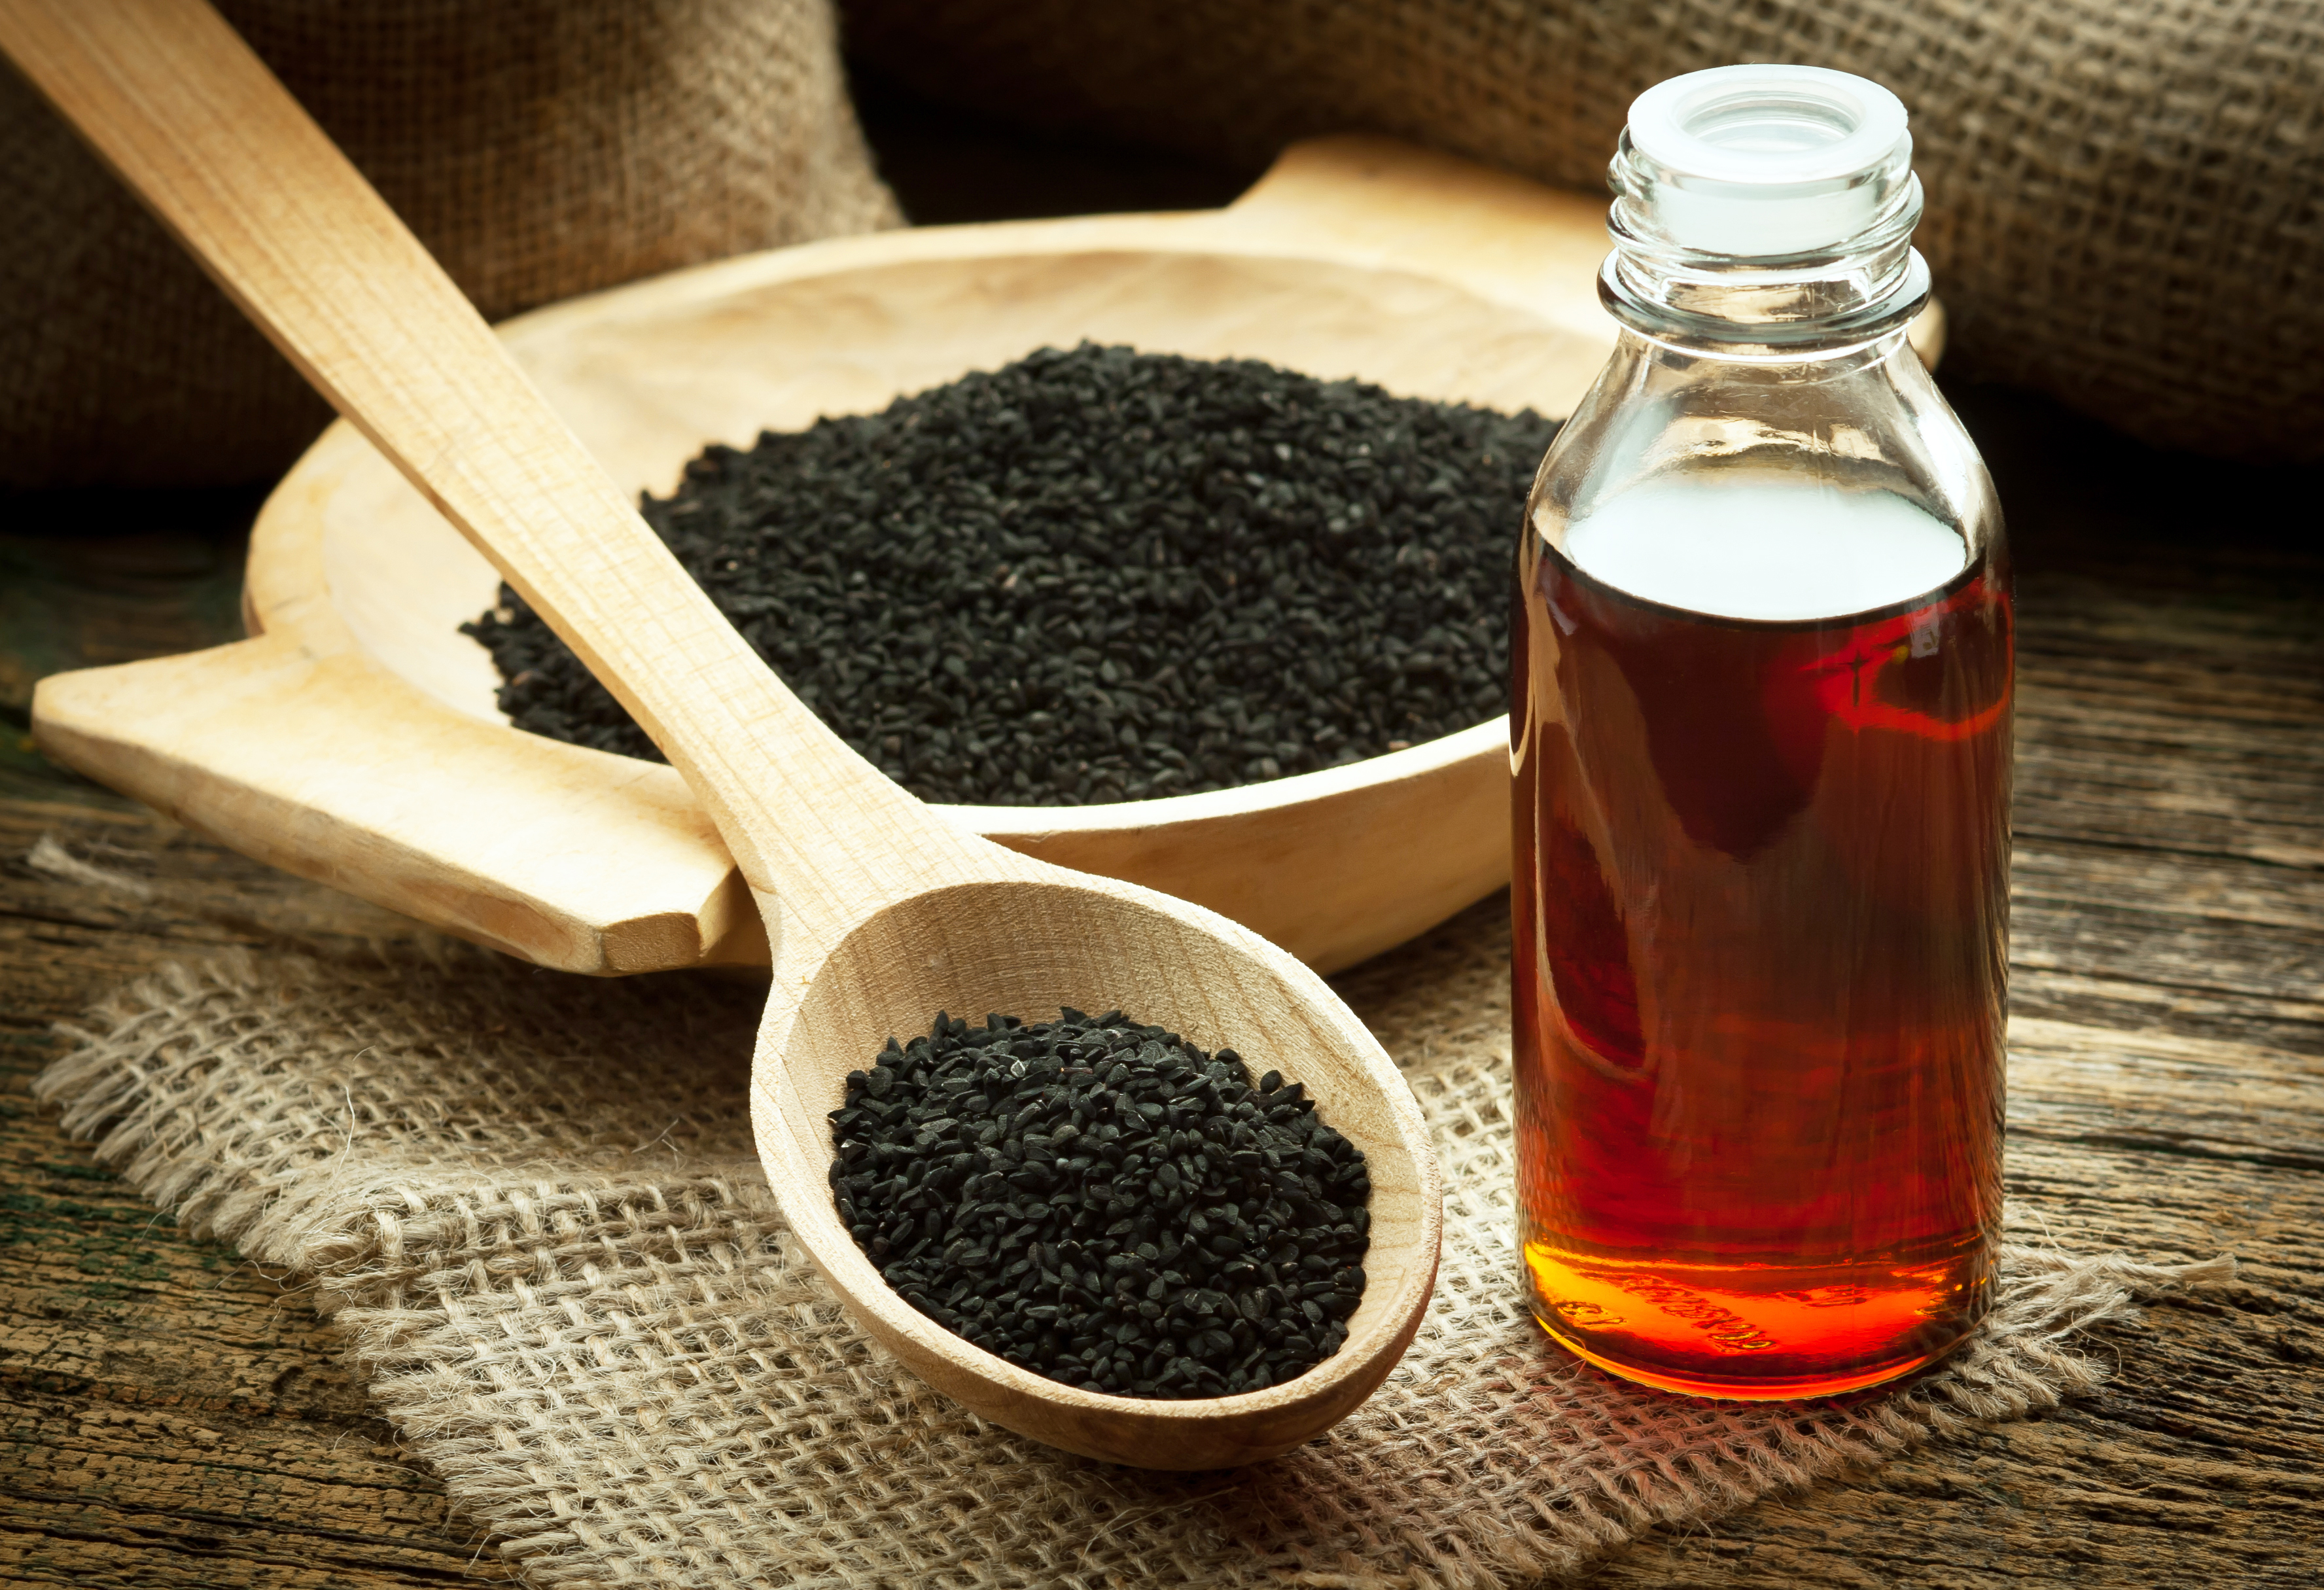 Black Cumin Oil Benefits for Weight Loss — Everything You Need to Know